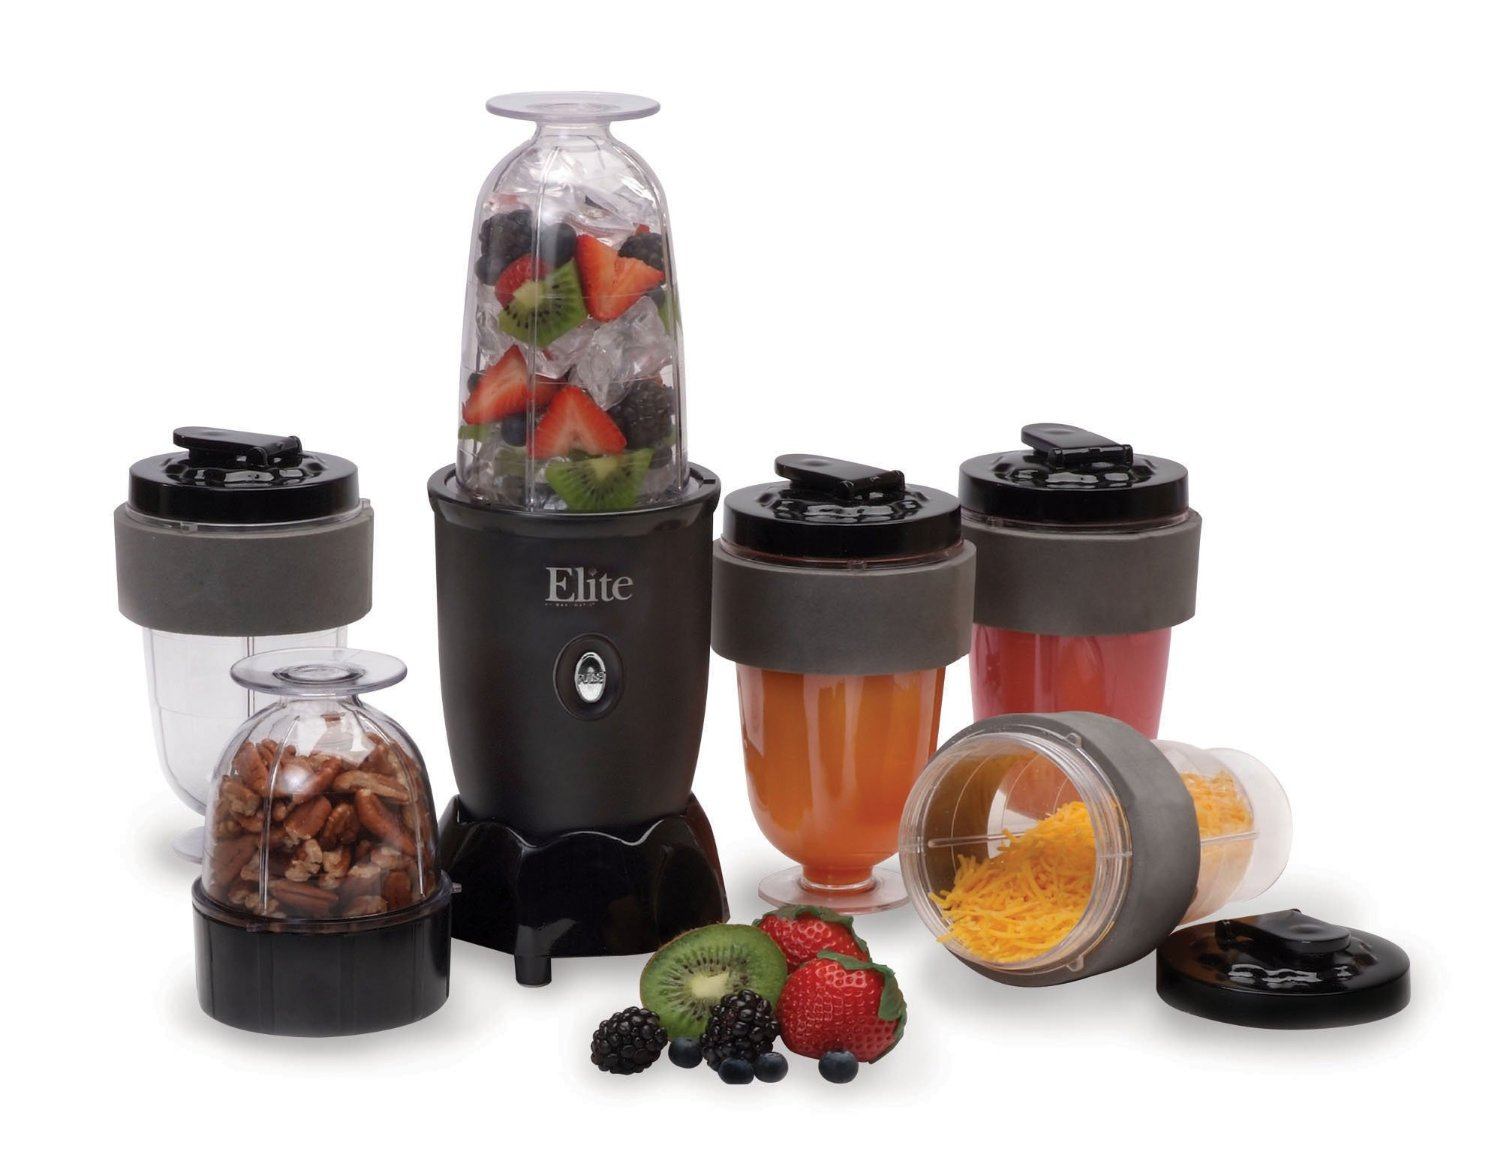 5-maximatic-epb-1800-elite-cuisine-300-watt-17-piece-personal-drink-blender